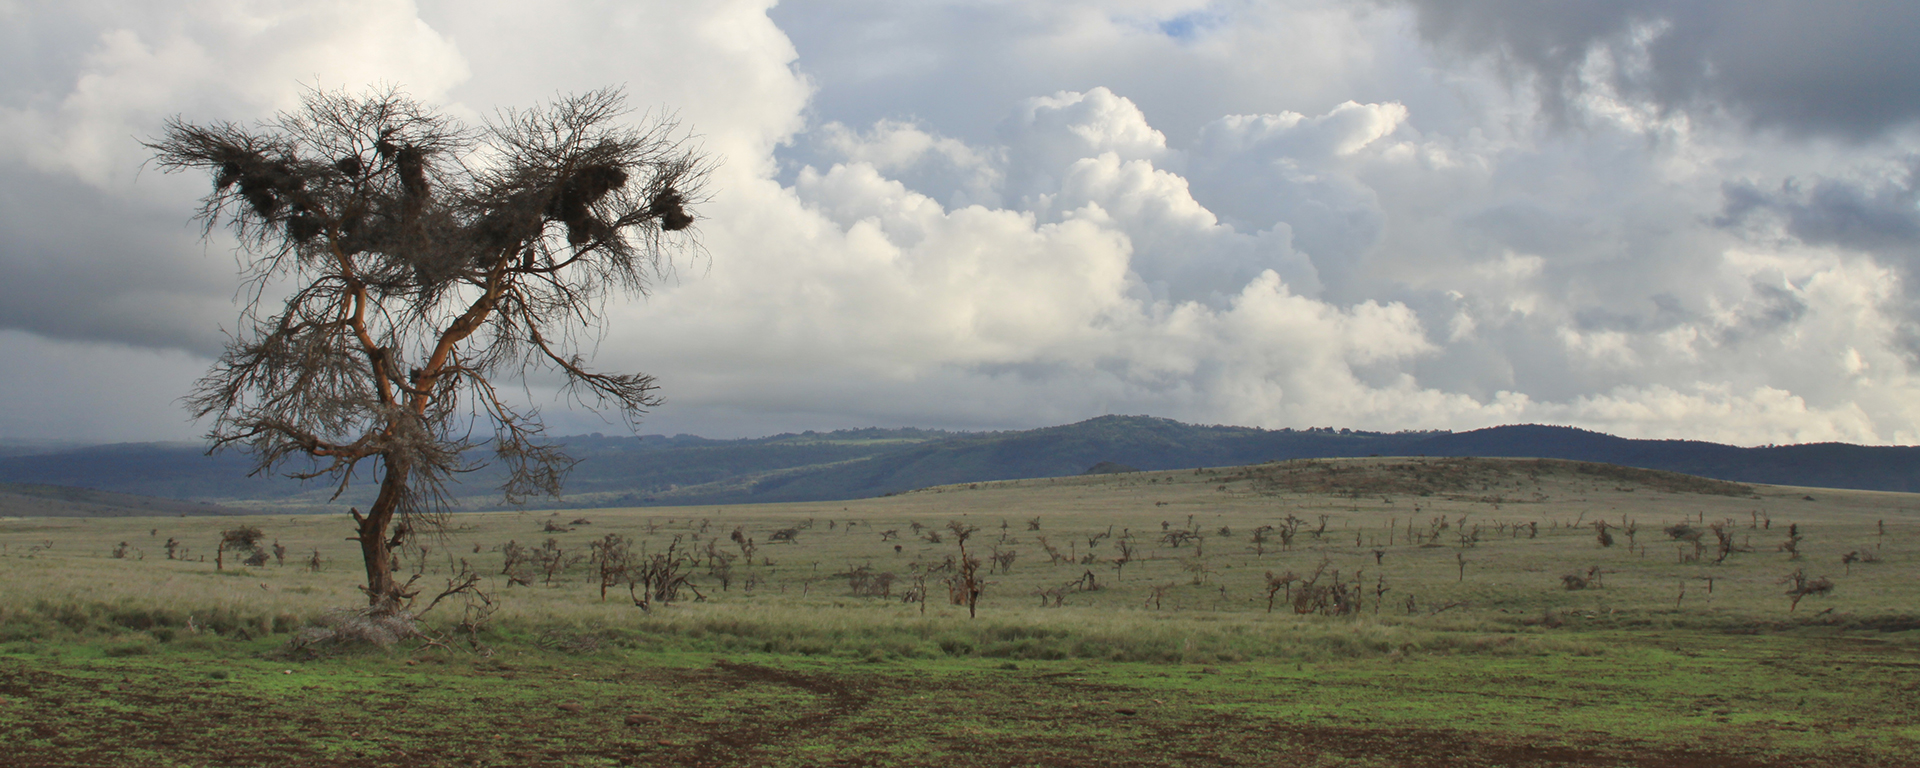 A classic late afternoon Green Season landscape in Lewa – Kenya's glorious clouds make for very atmospheric photographs.